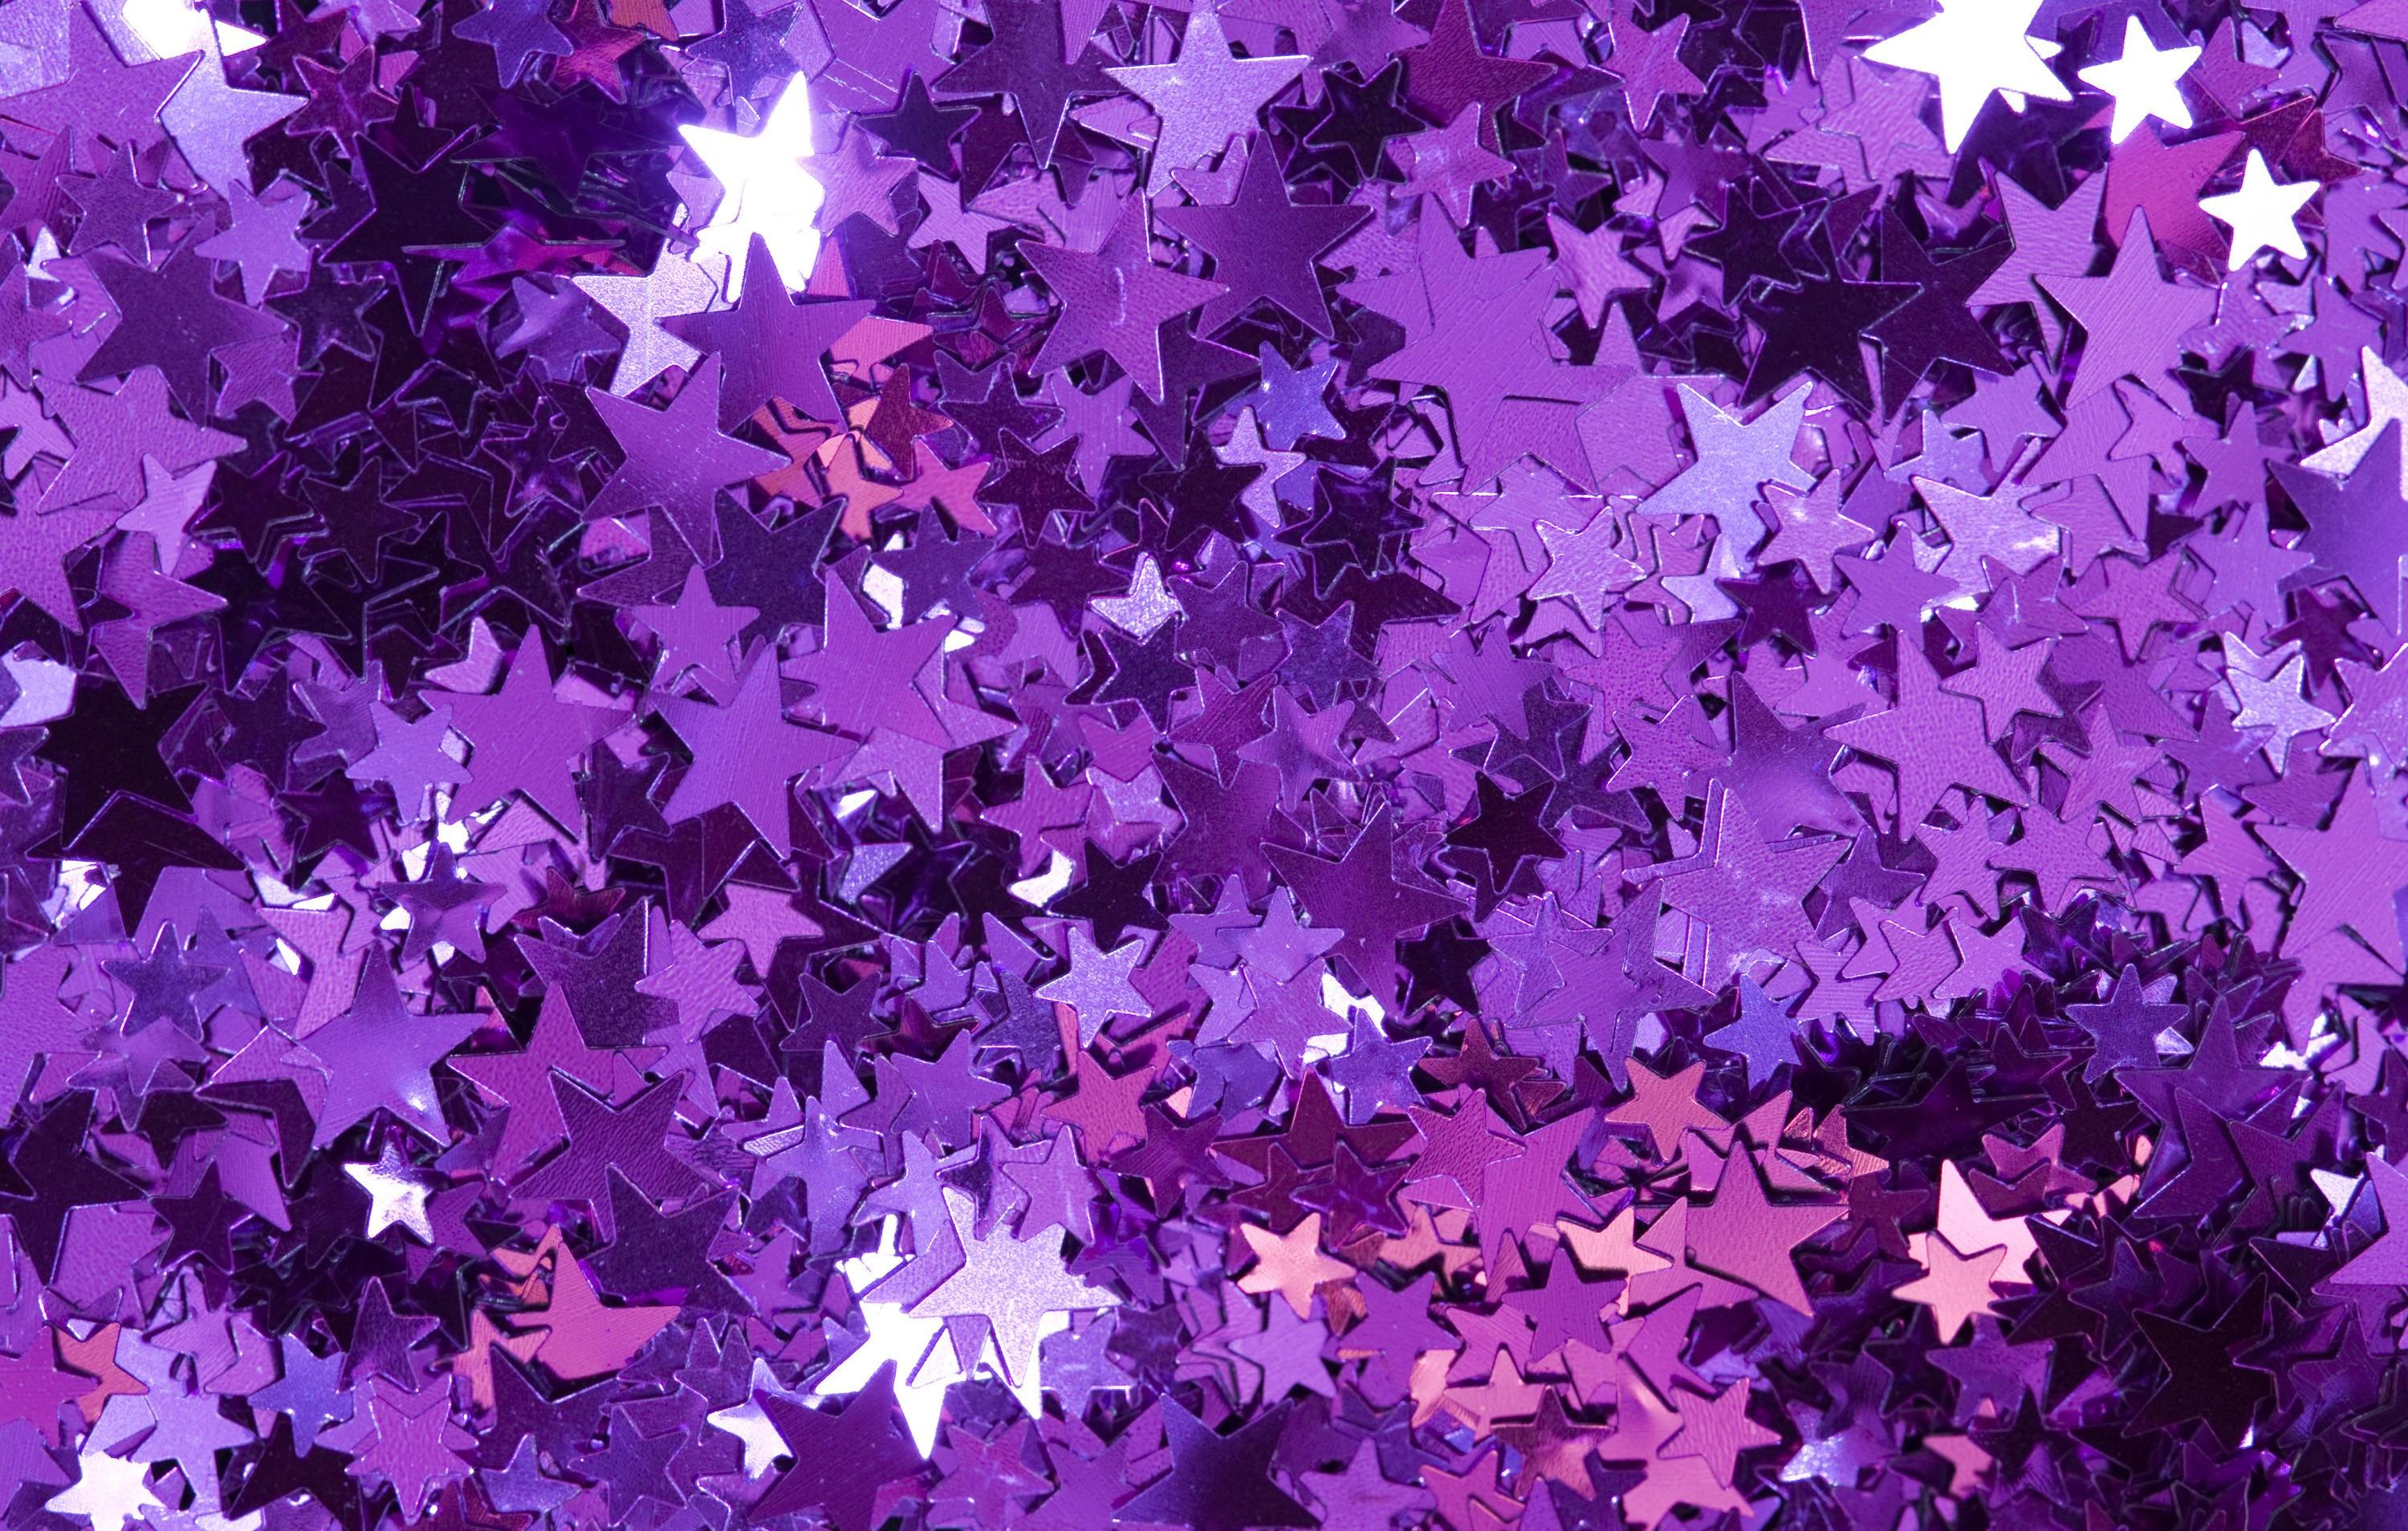 Glitter Background 14 344427 High Definition Wallpapers| wallalay.